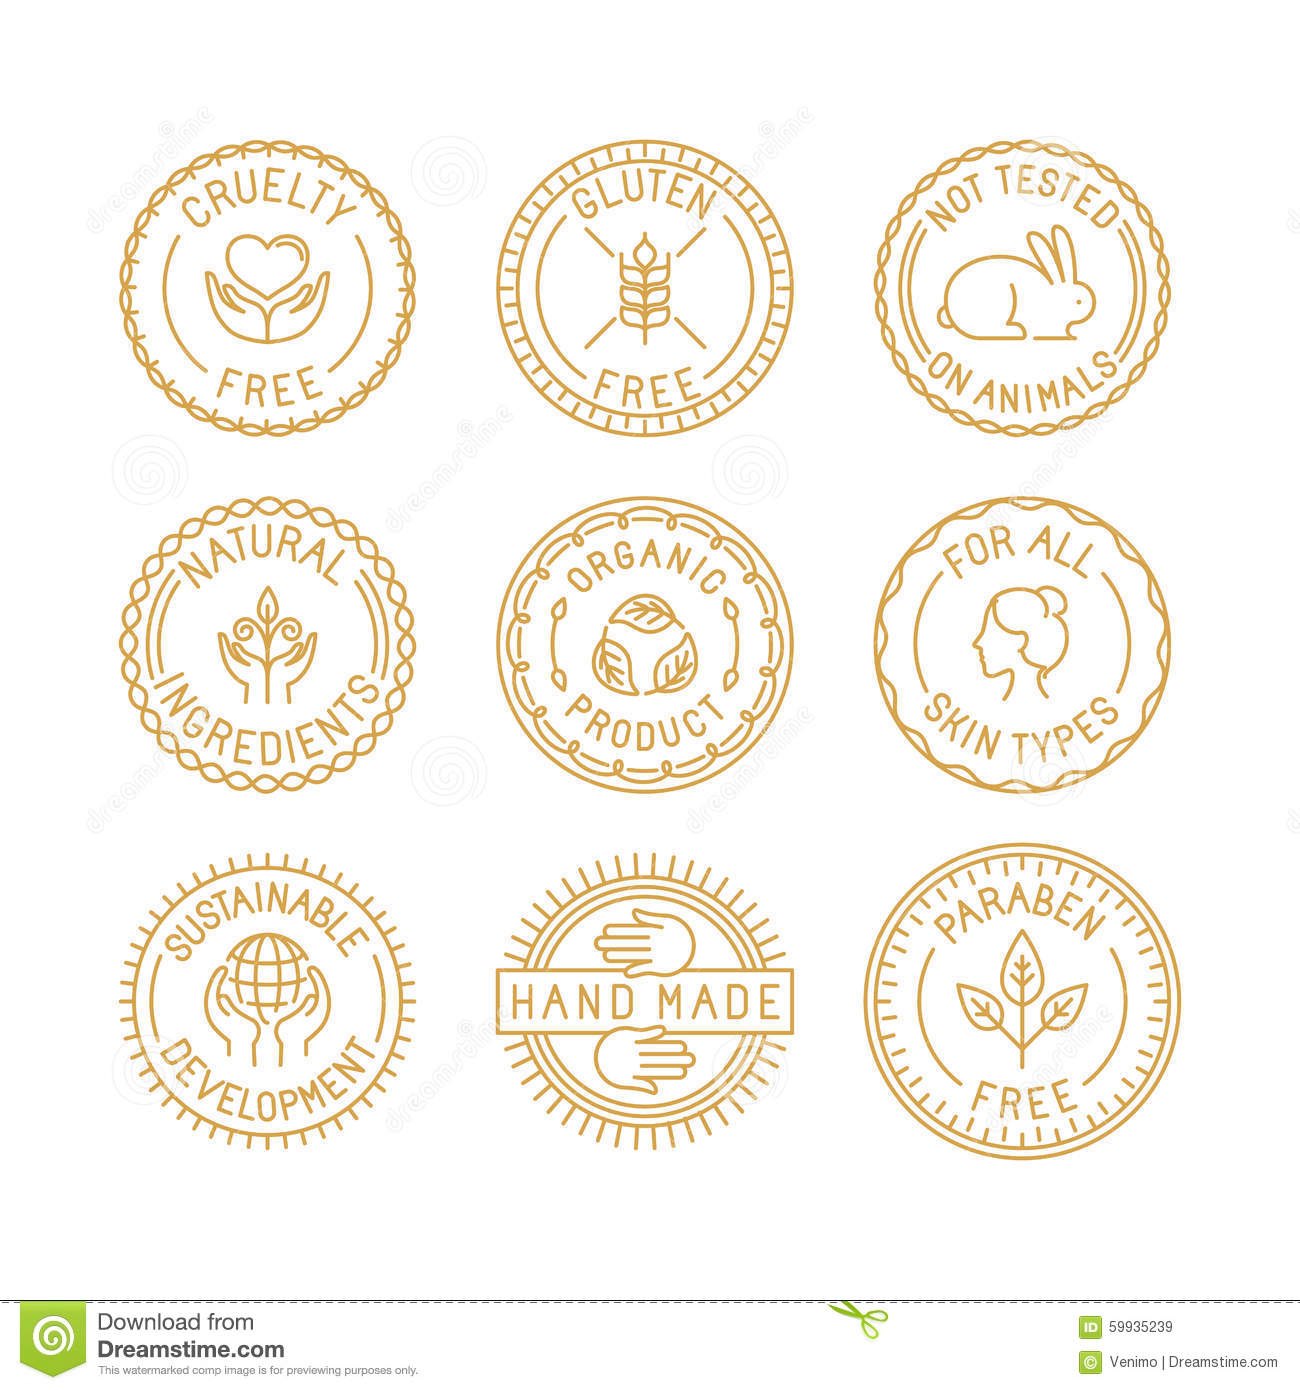 Vector set of badges and labels for natural and organic cosmetic